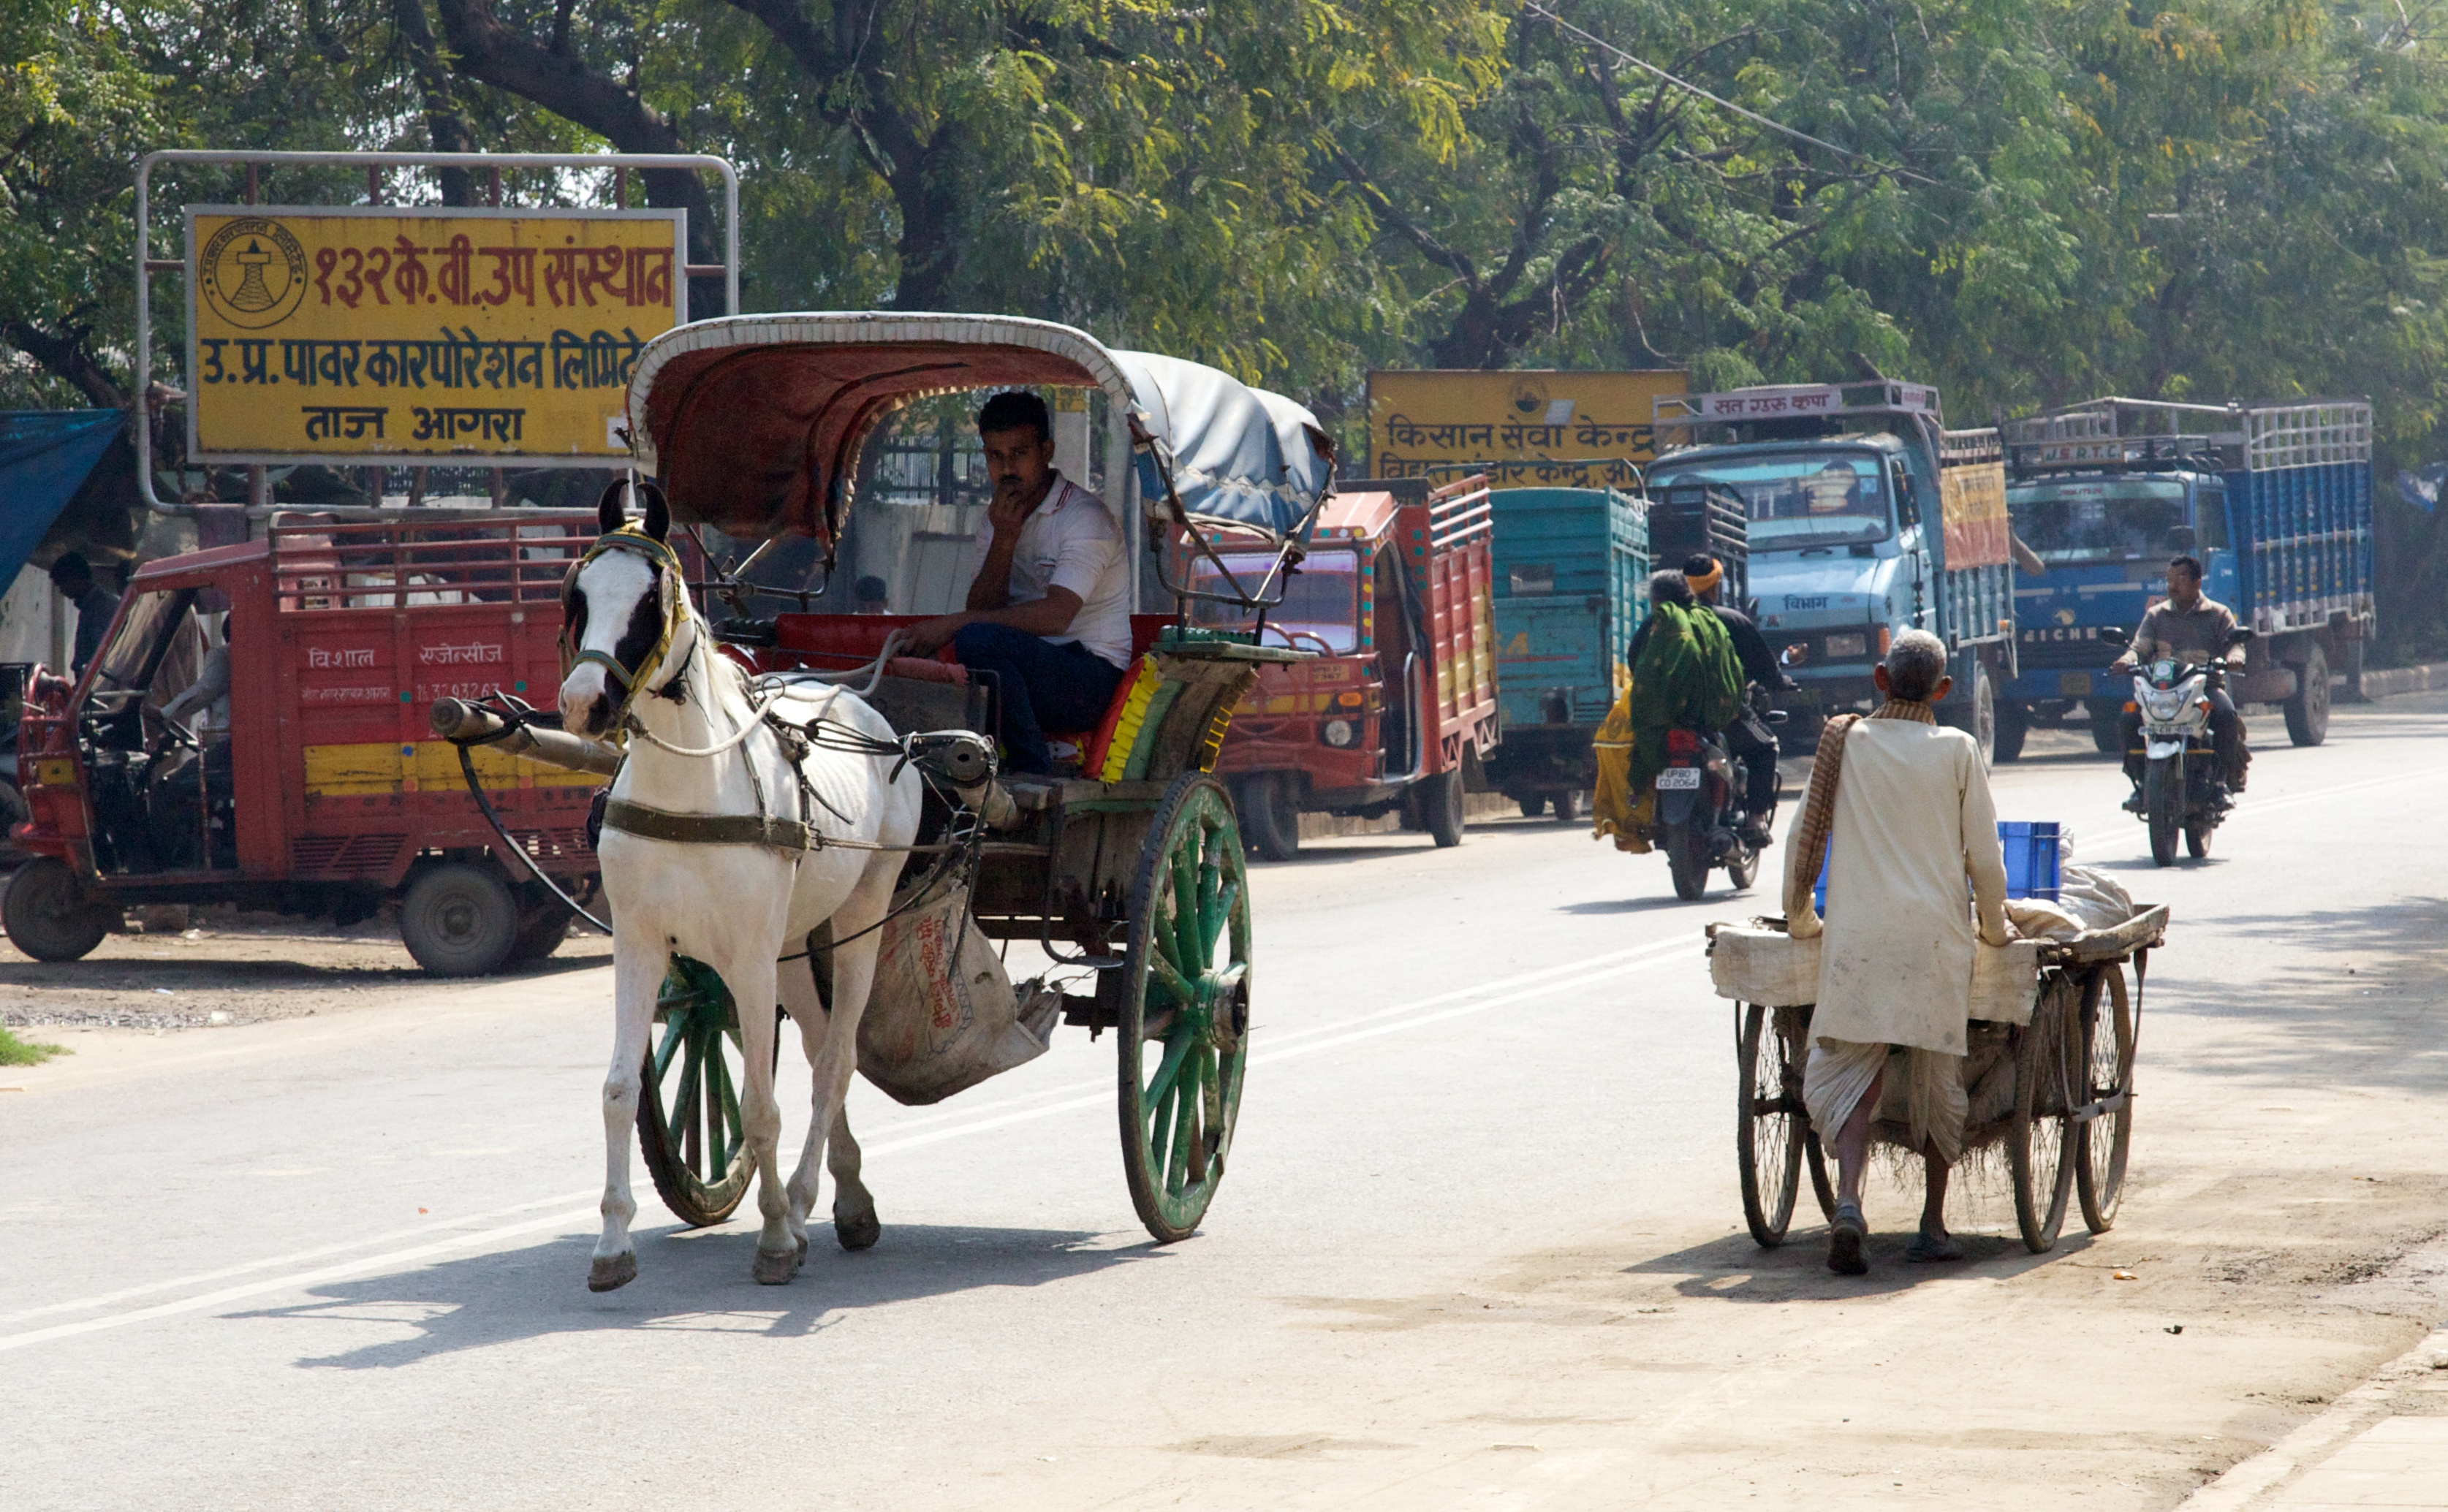 Some modes of road transport, on a road in India.